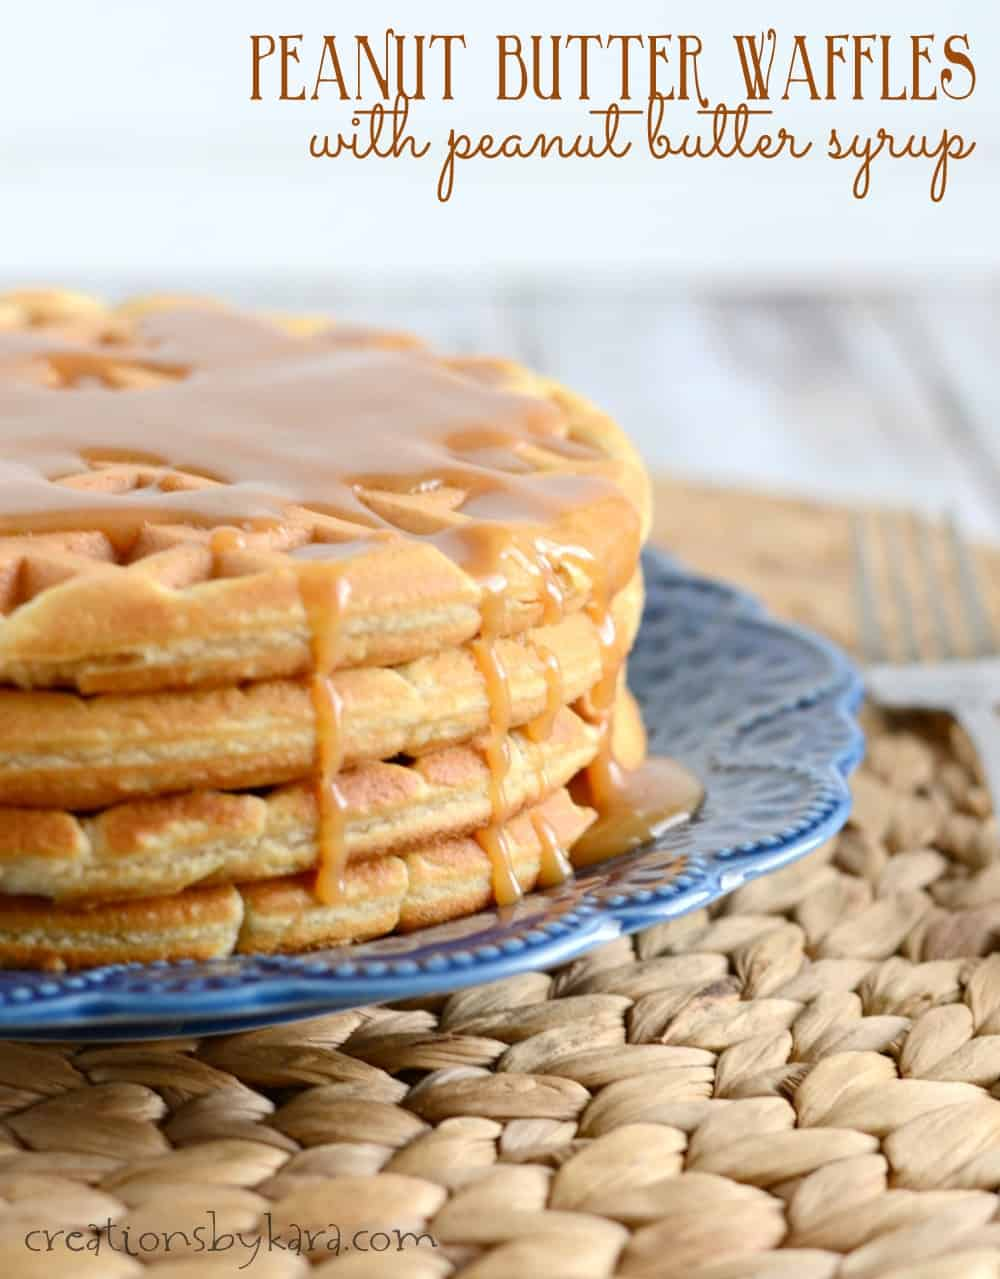 Peanut Butter Waffles With Peanut Butter Syrup Creations